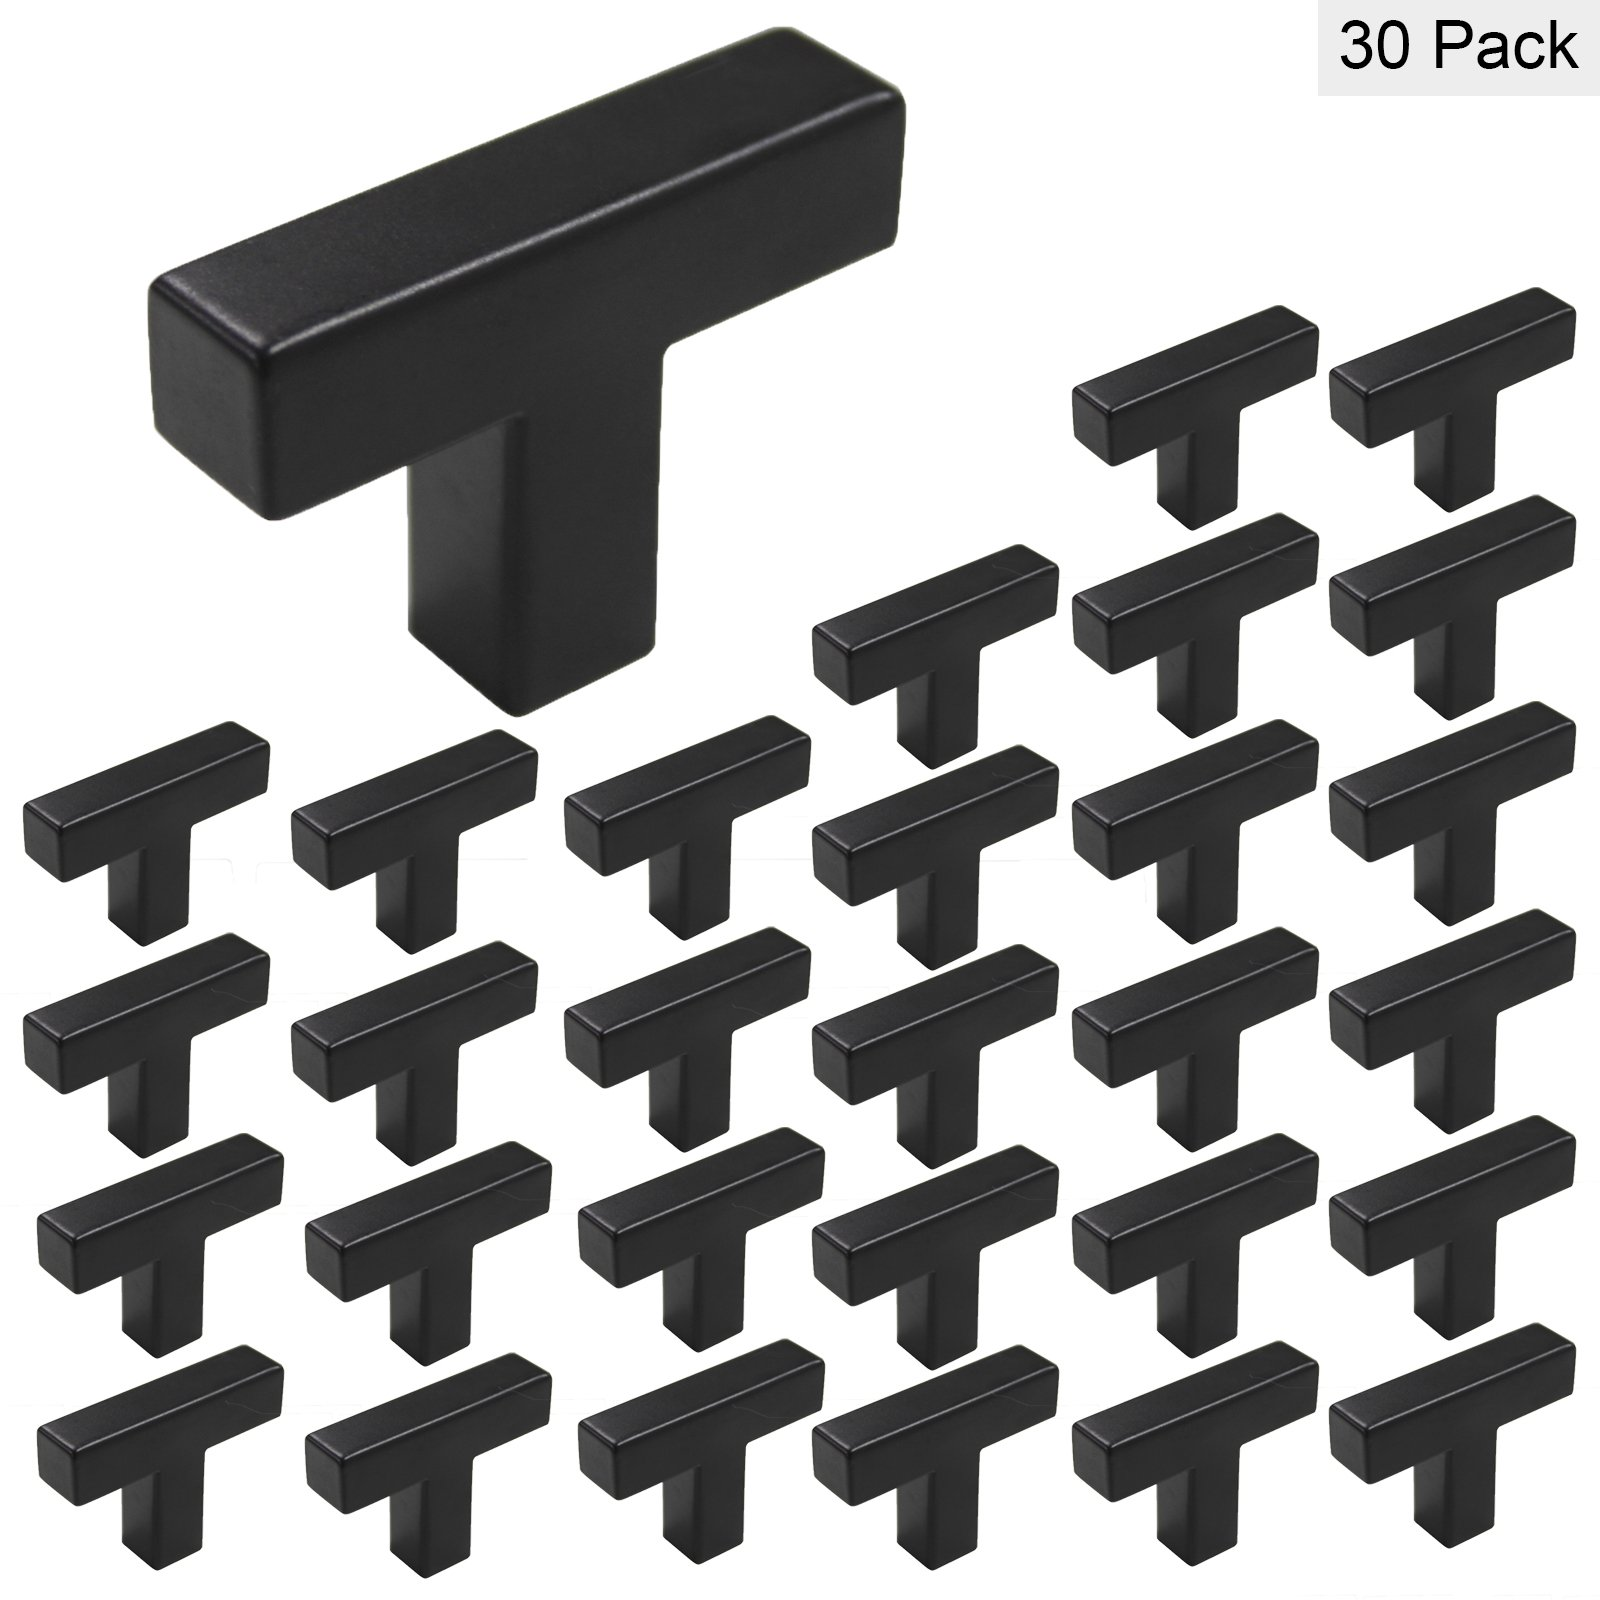 Flat Black Cabinets Knobs Handles Stainless Steel Square Single Hole T Knob - Homidy HDJ12 Drawer Pulls For Kitchen Cupboard Bathroom Storage 30Pack